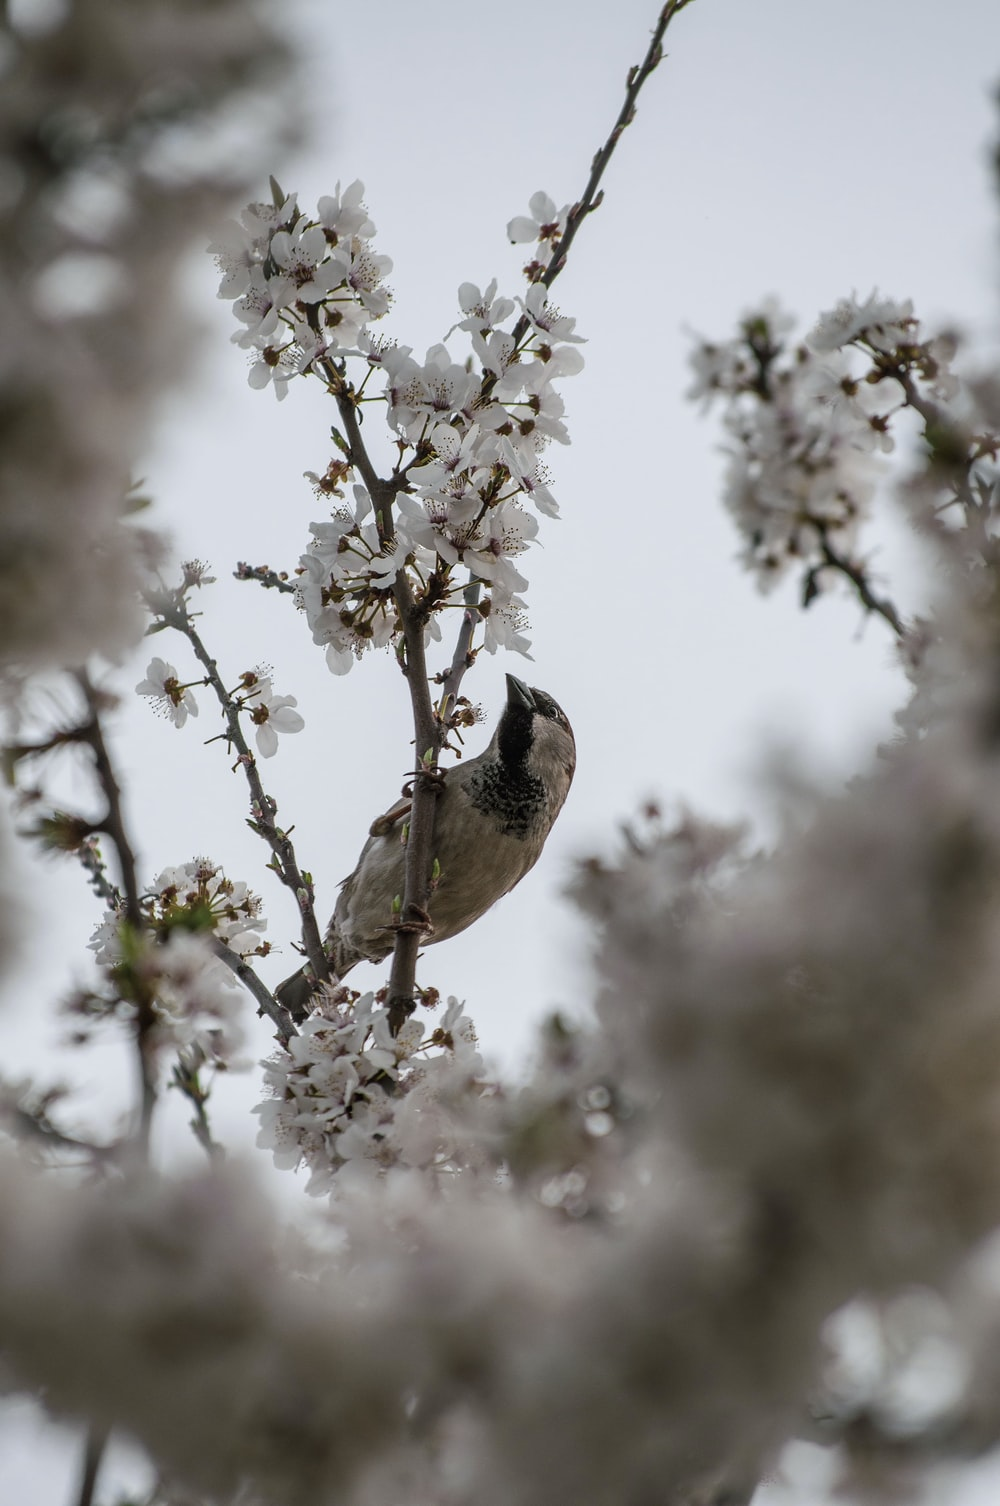 brown and white bird perched on white flower